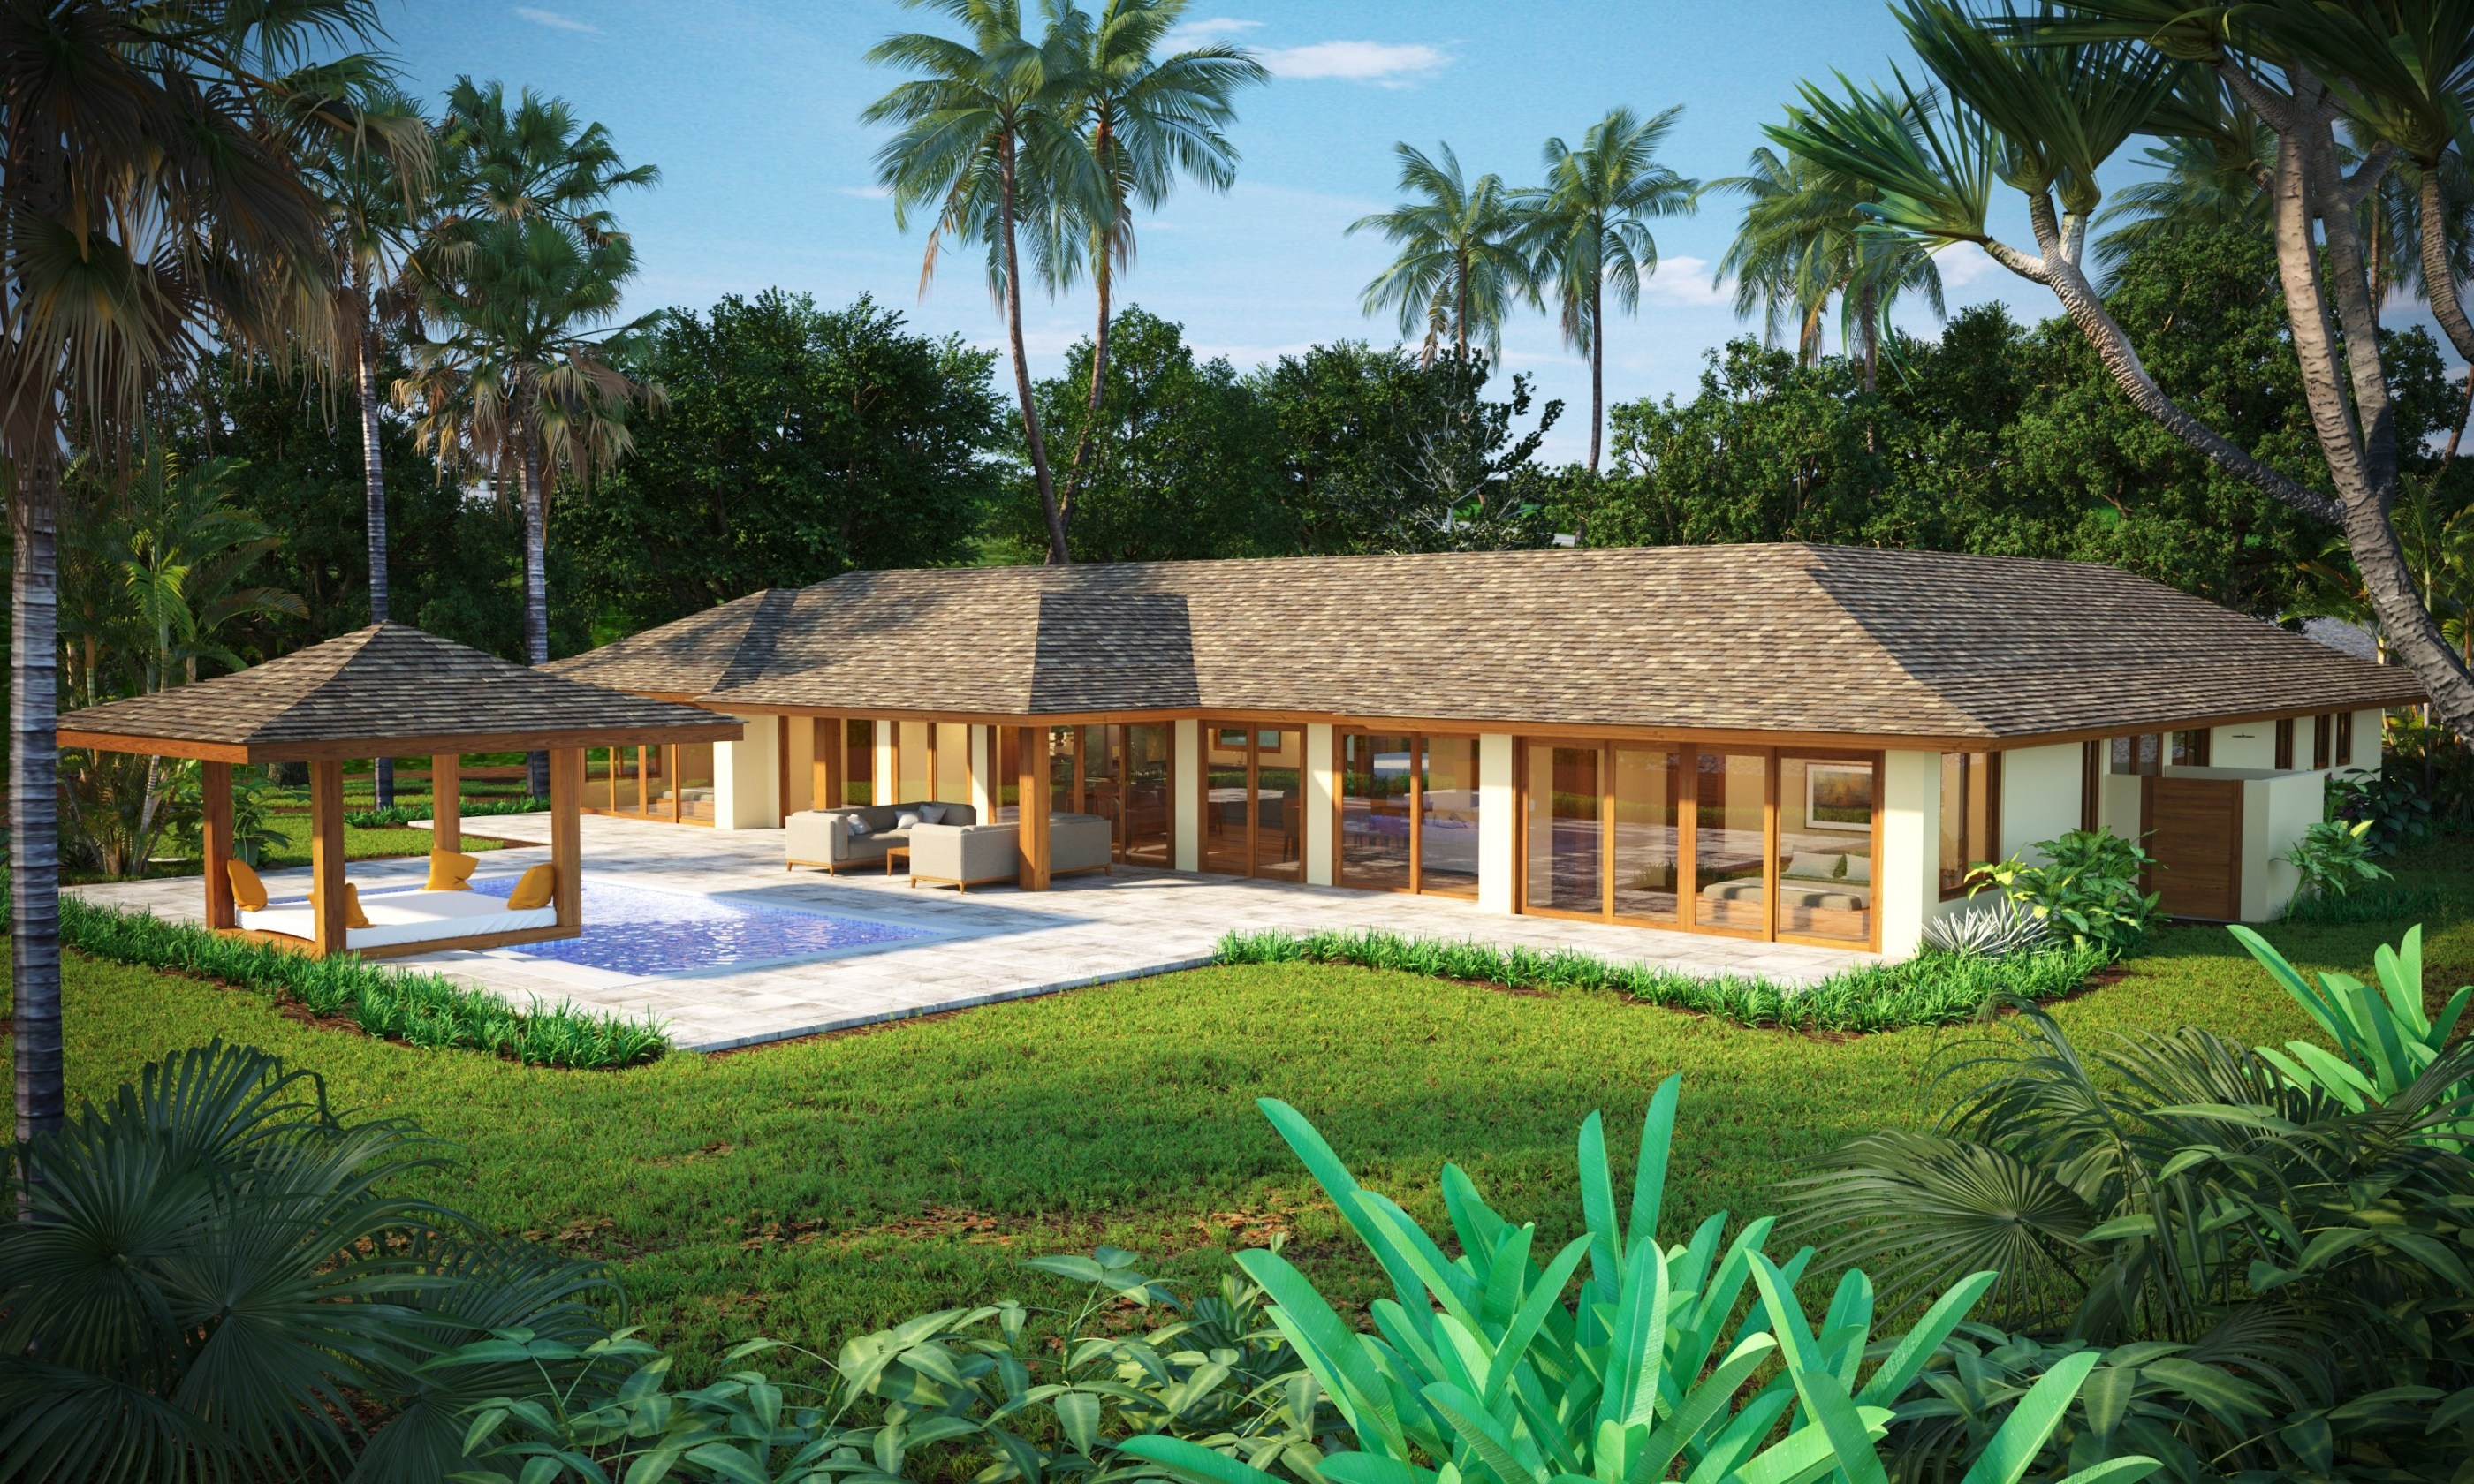 Luxury Design For The Tropics By Eco Chic Home Design